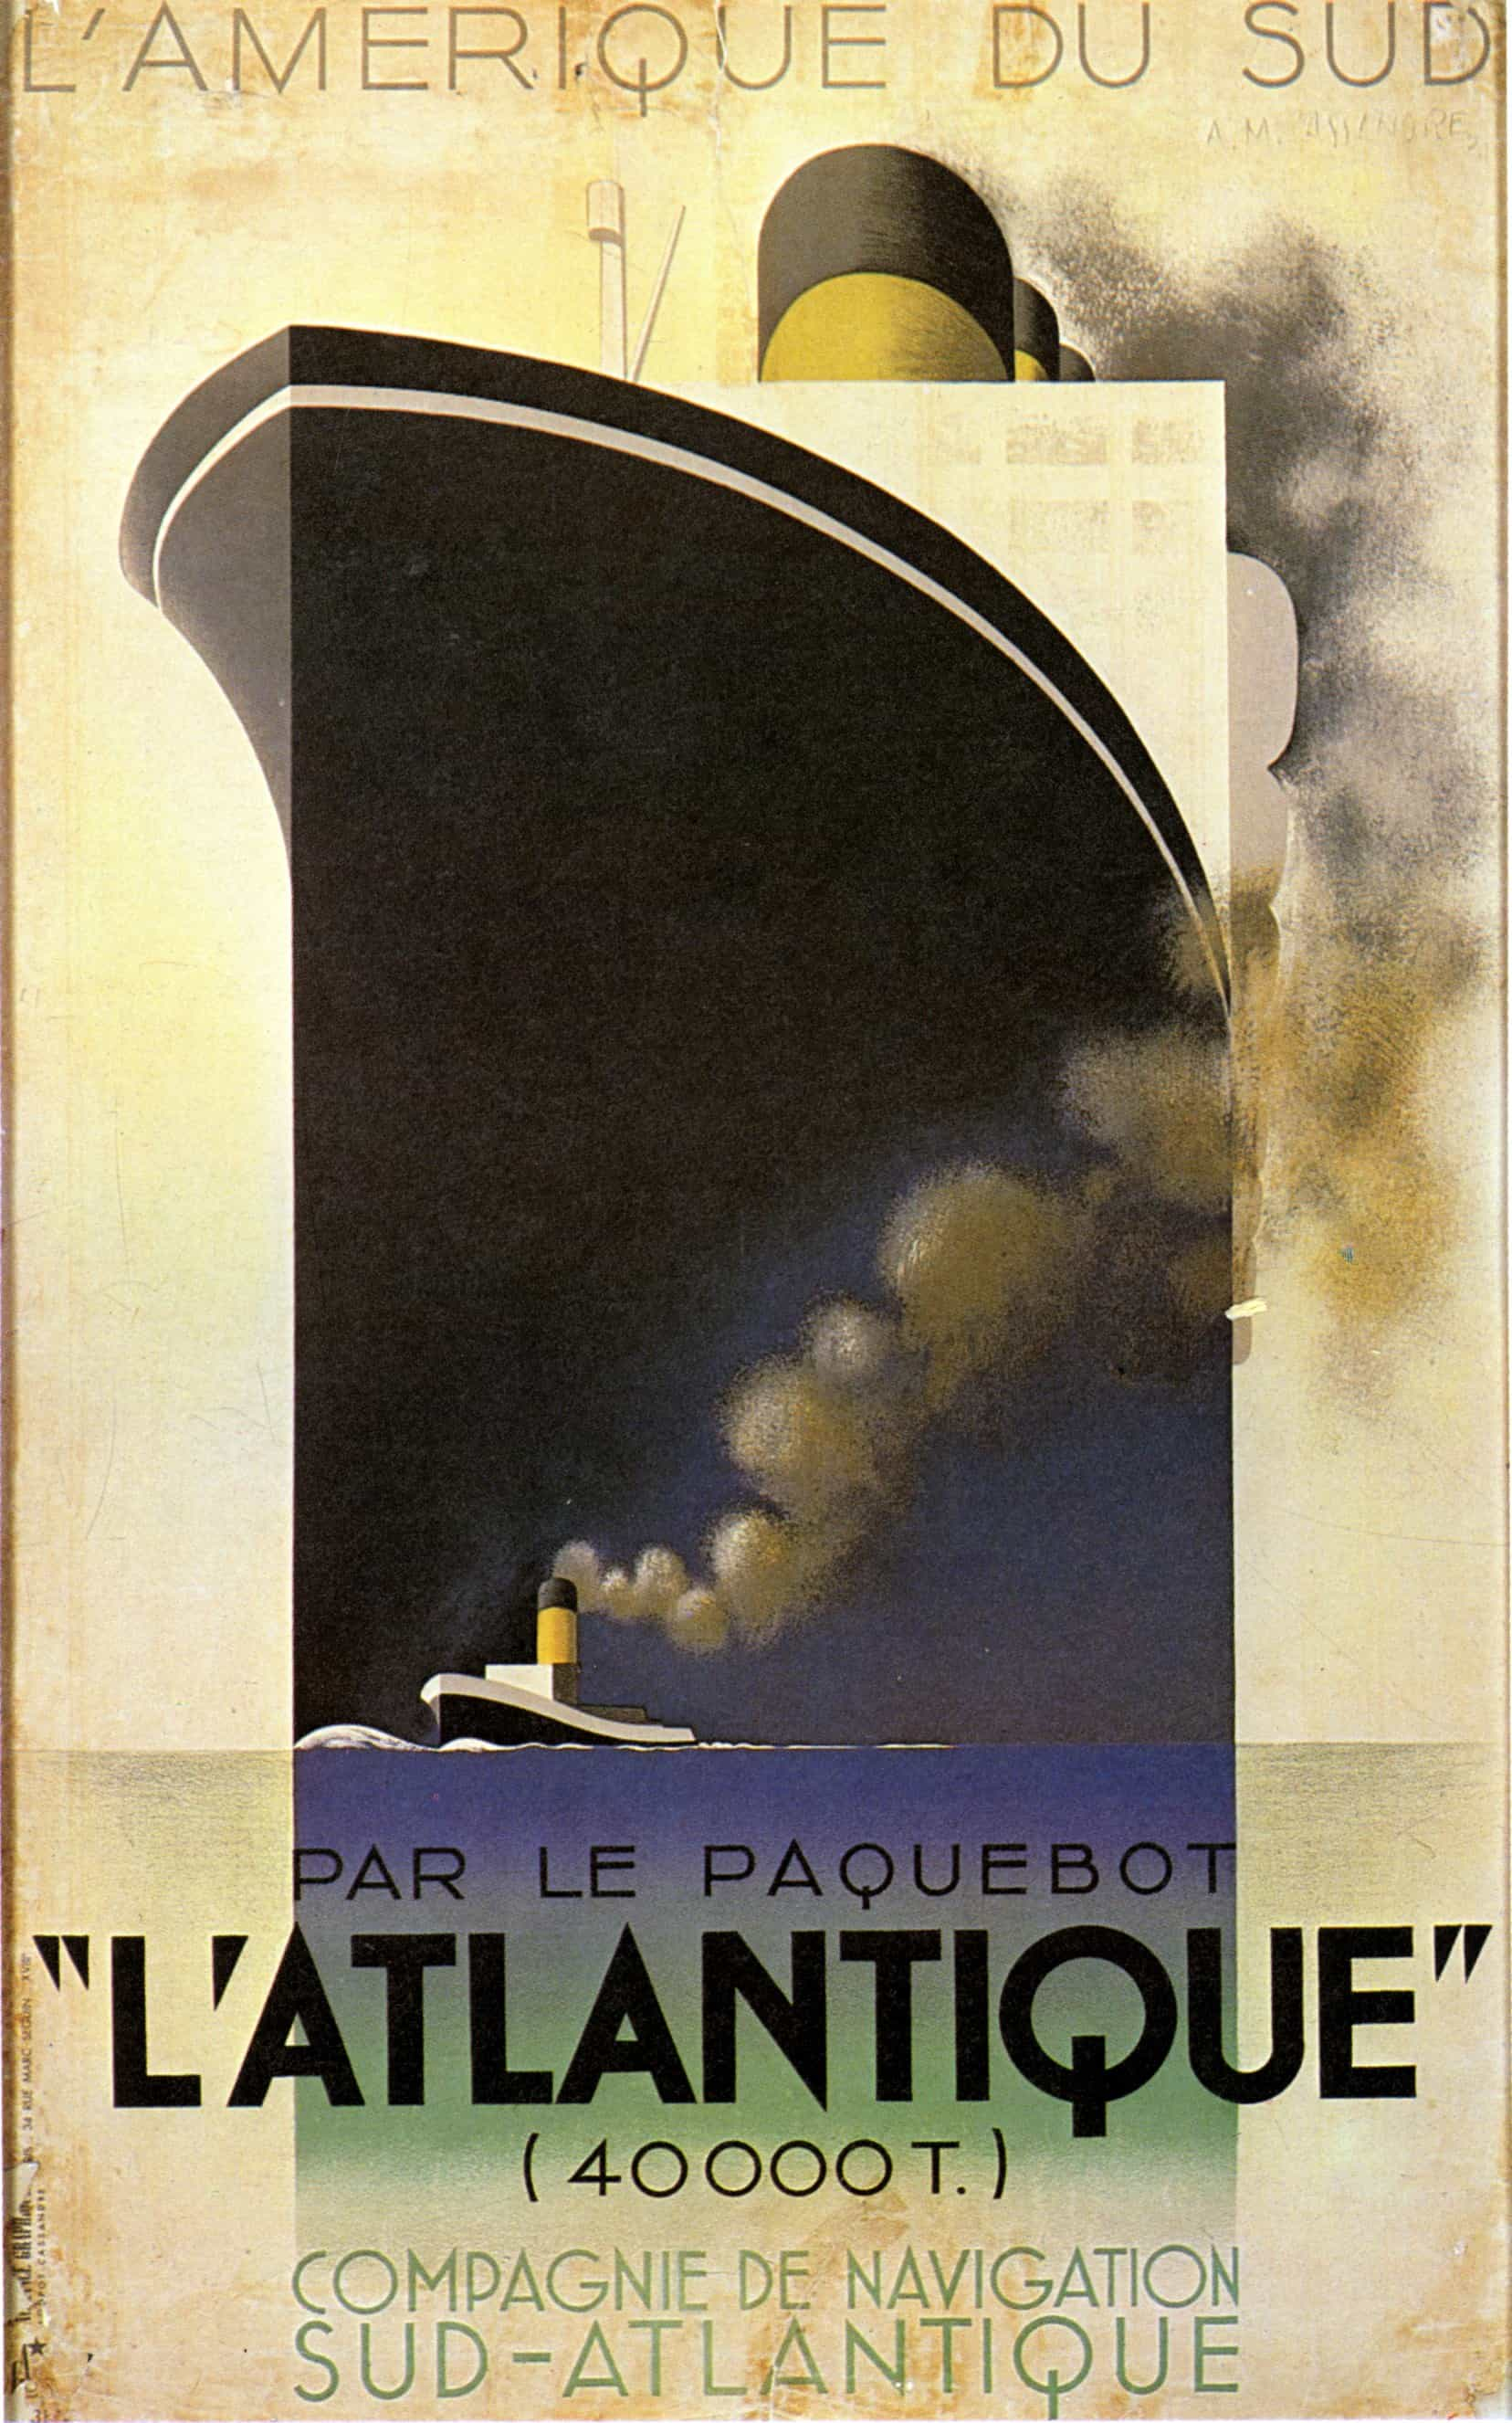 - Travel posters emphasised the size, modernity and luxury of the ships themselves